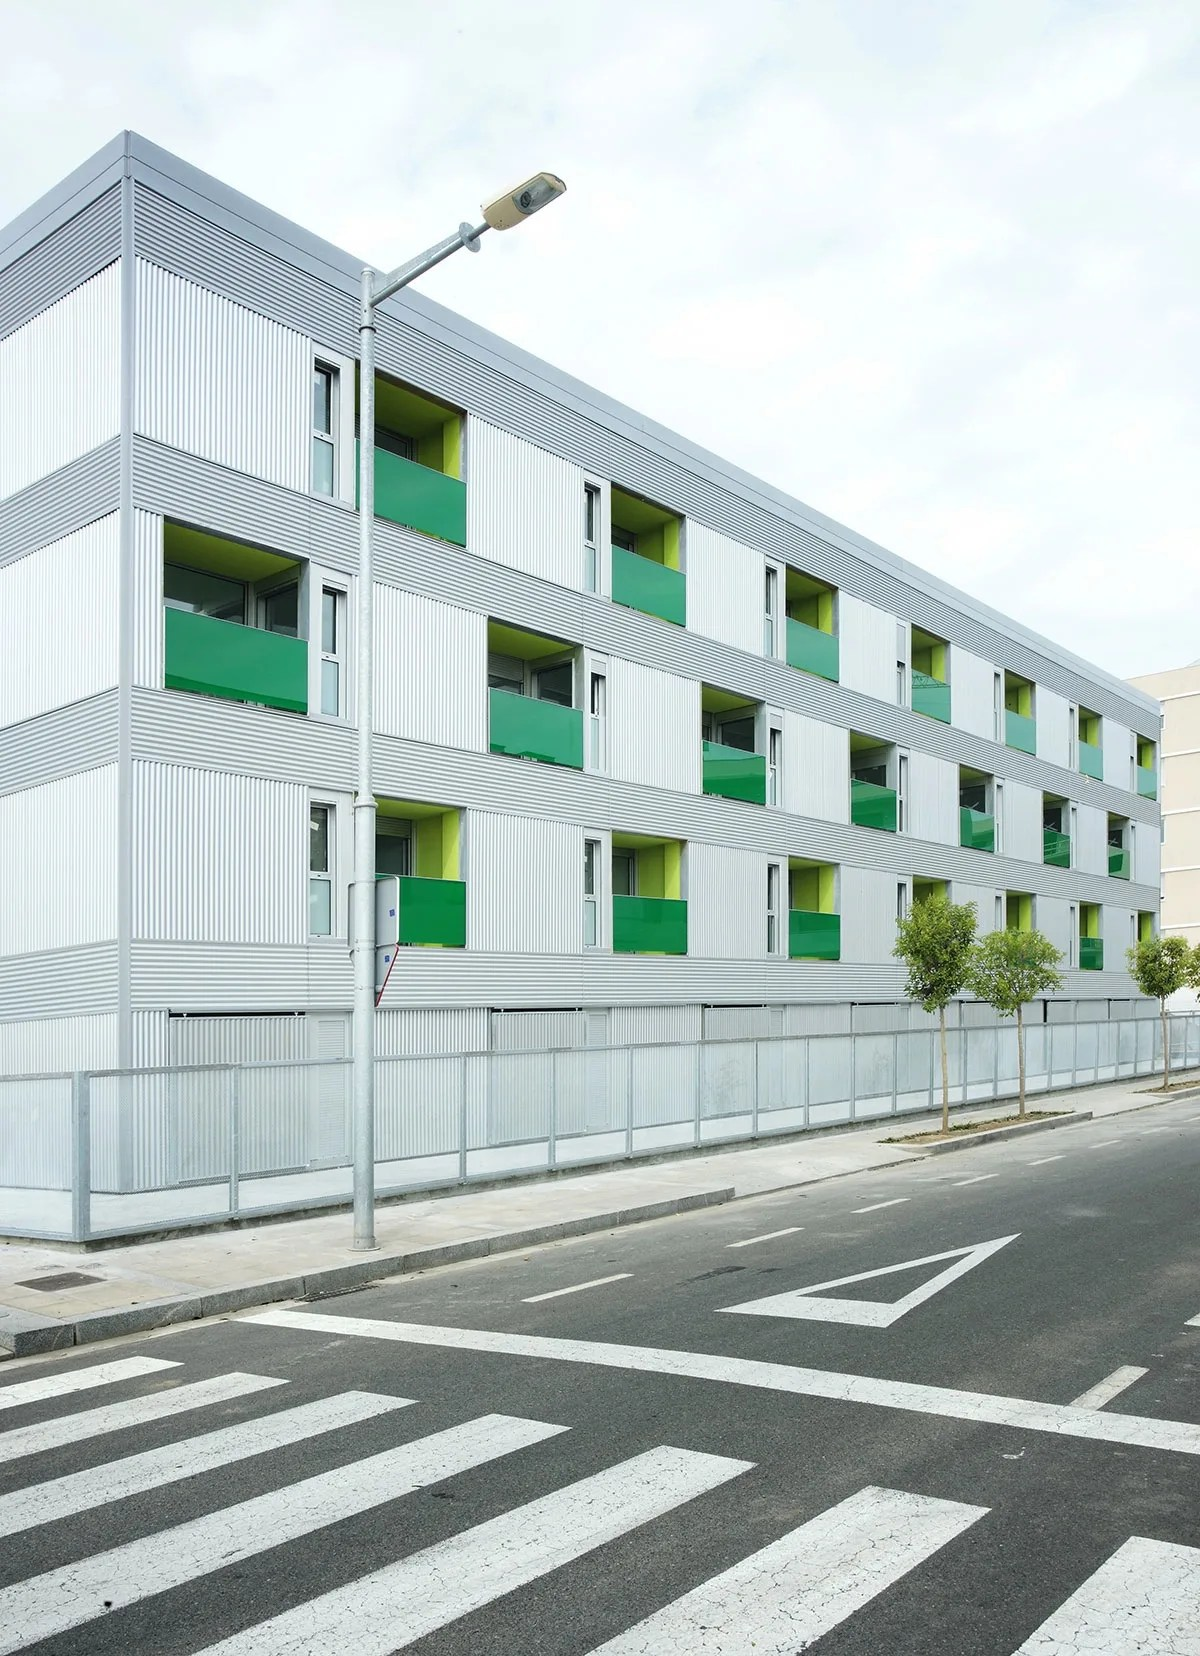 44 units social housing in pardinyes